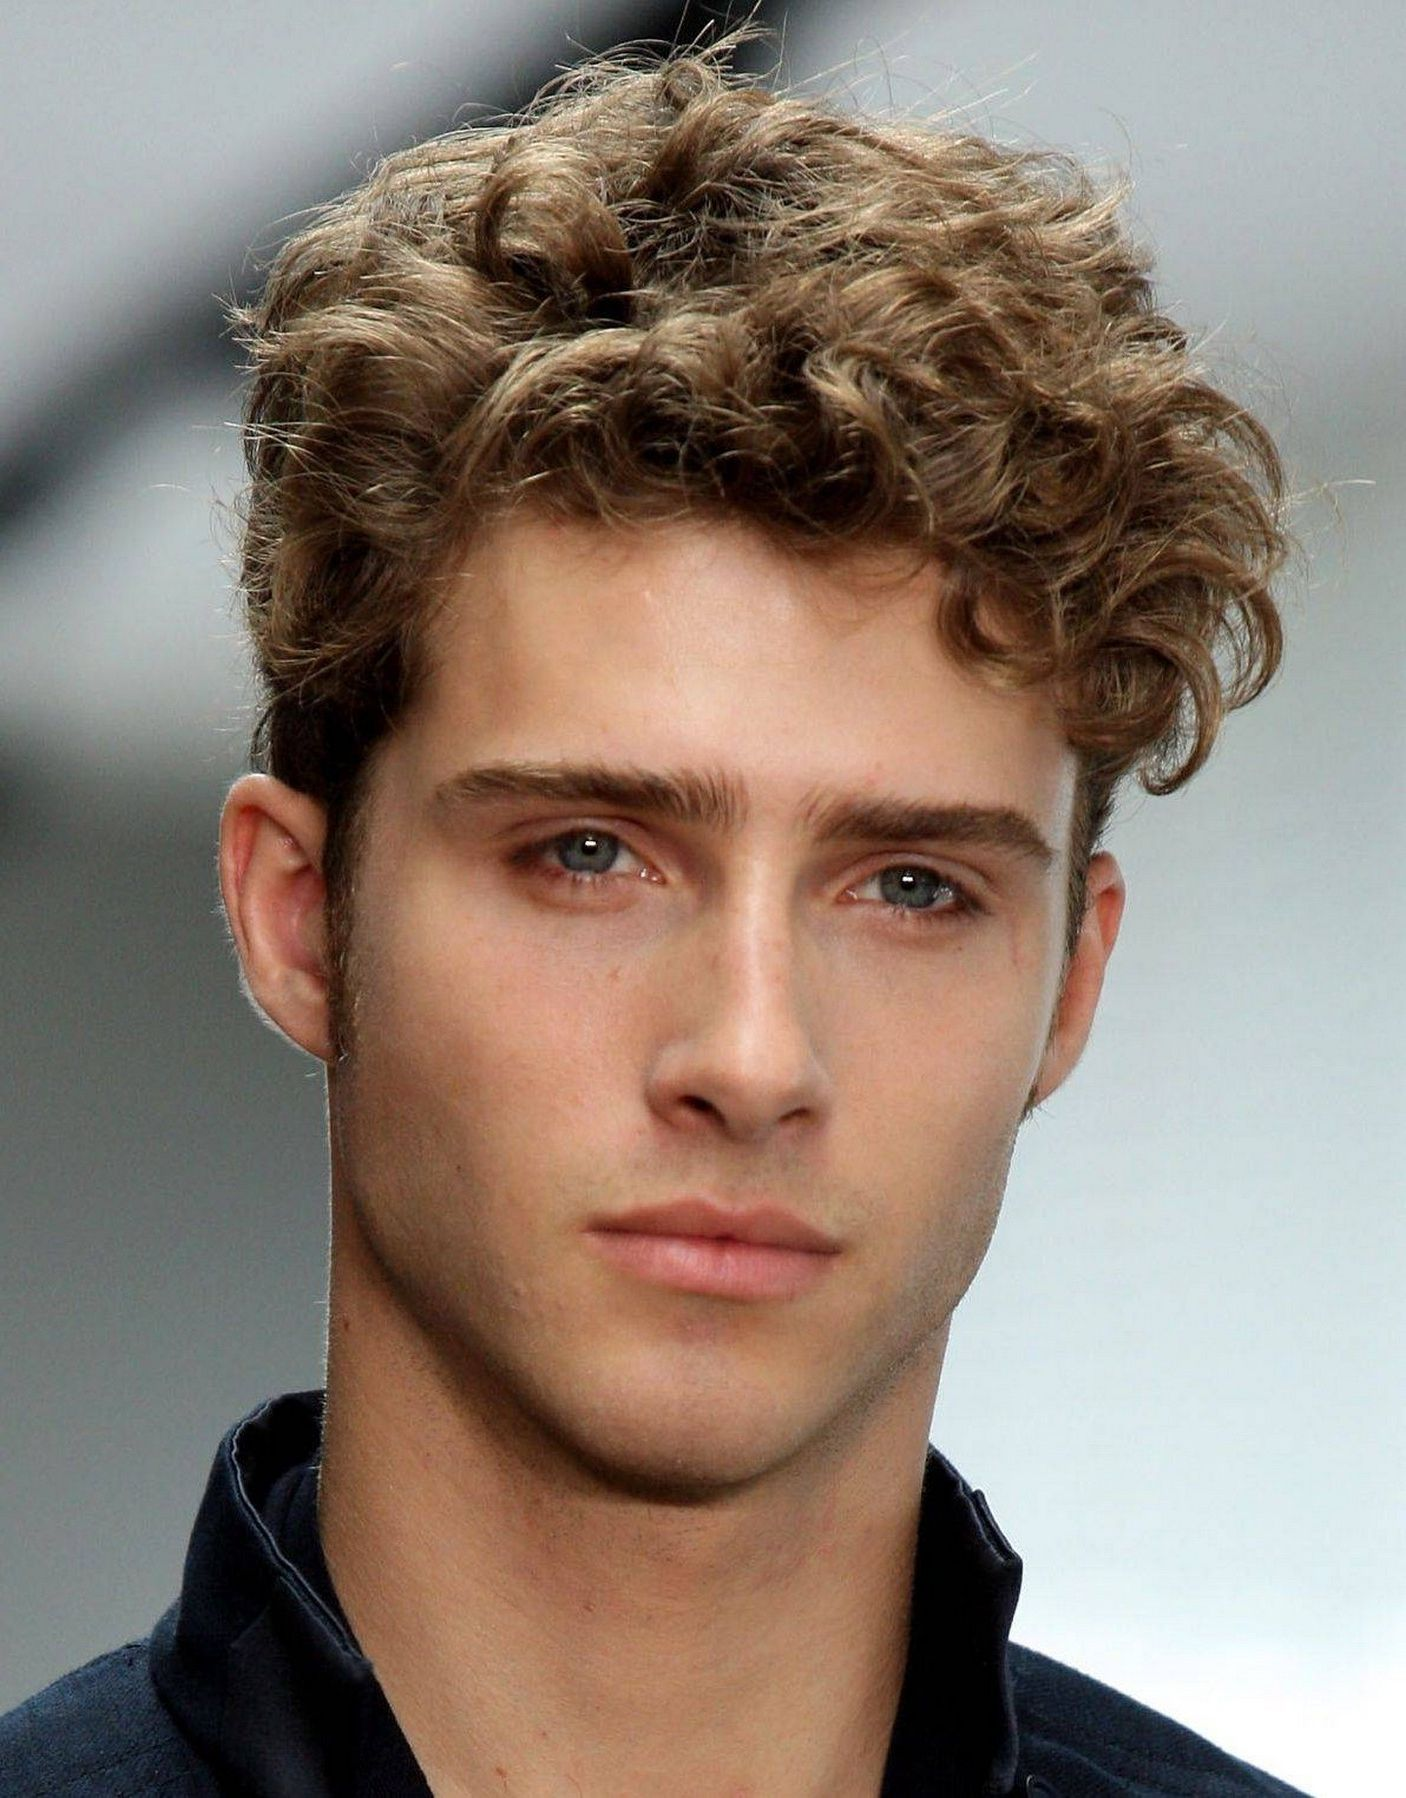 Short Curly Hairstyles For Men Tag Men Hairstyles Page 6  Globezhair  Hairstyles  Pinterest